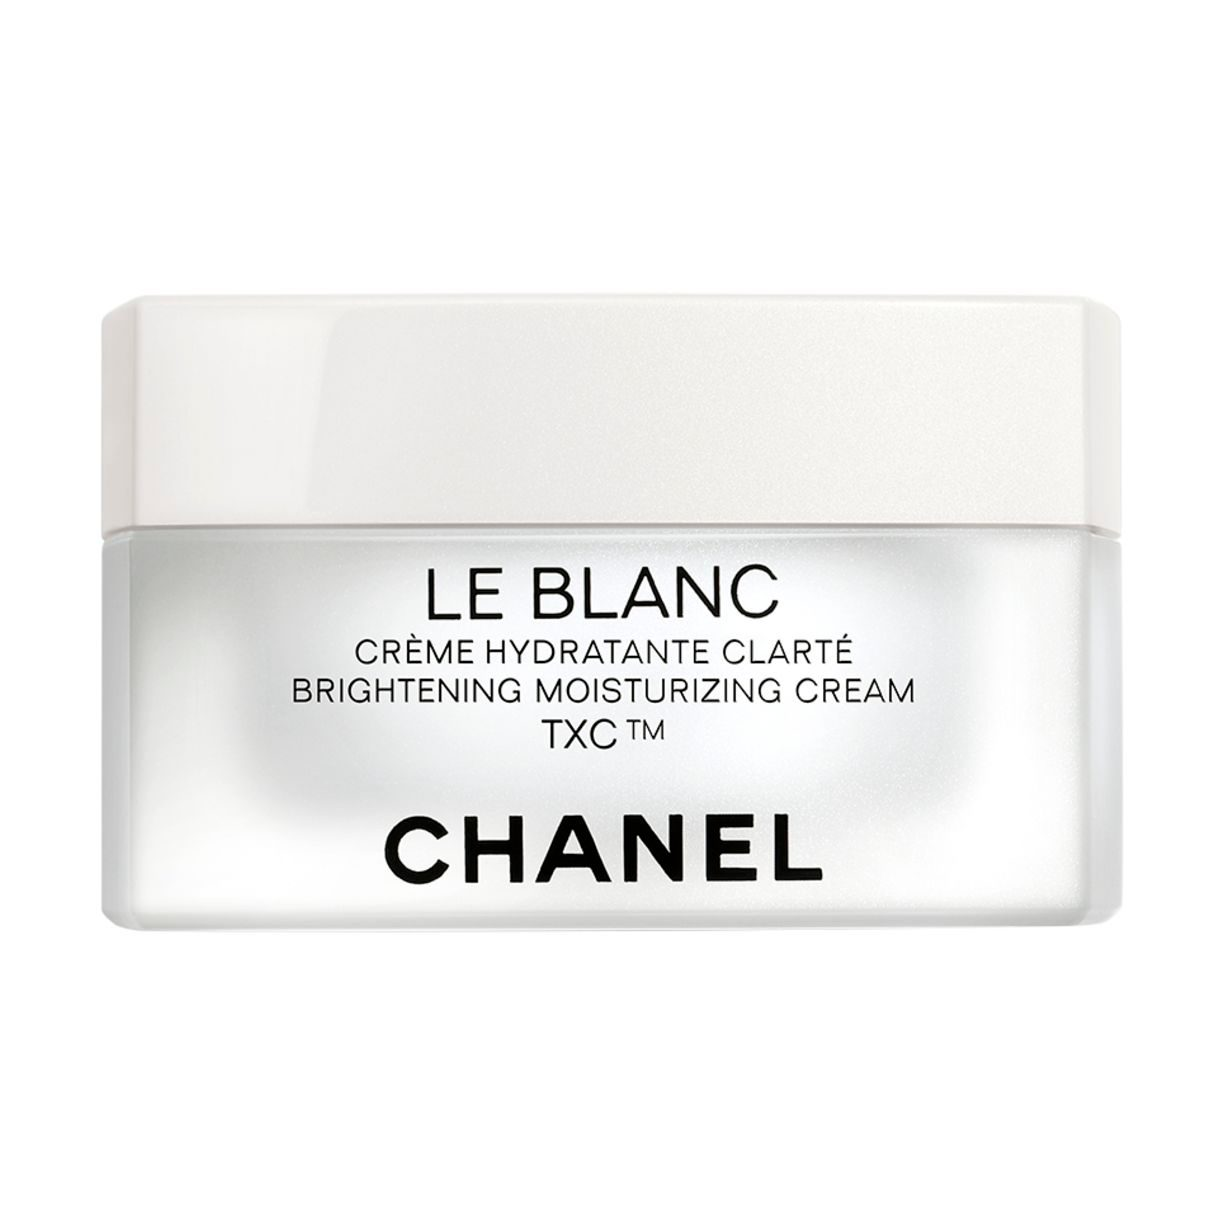 LE BLANC BRIGHTENING MOISTURIZING CREAM TXC™ JAR 48G